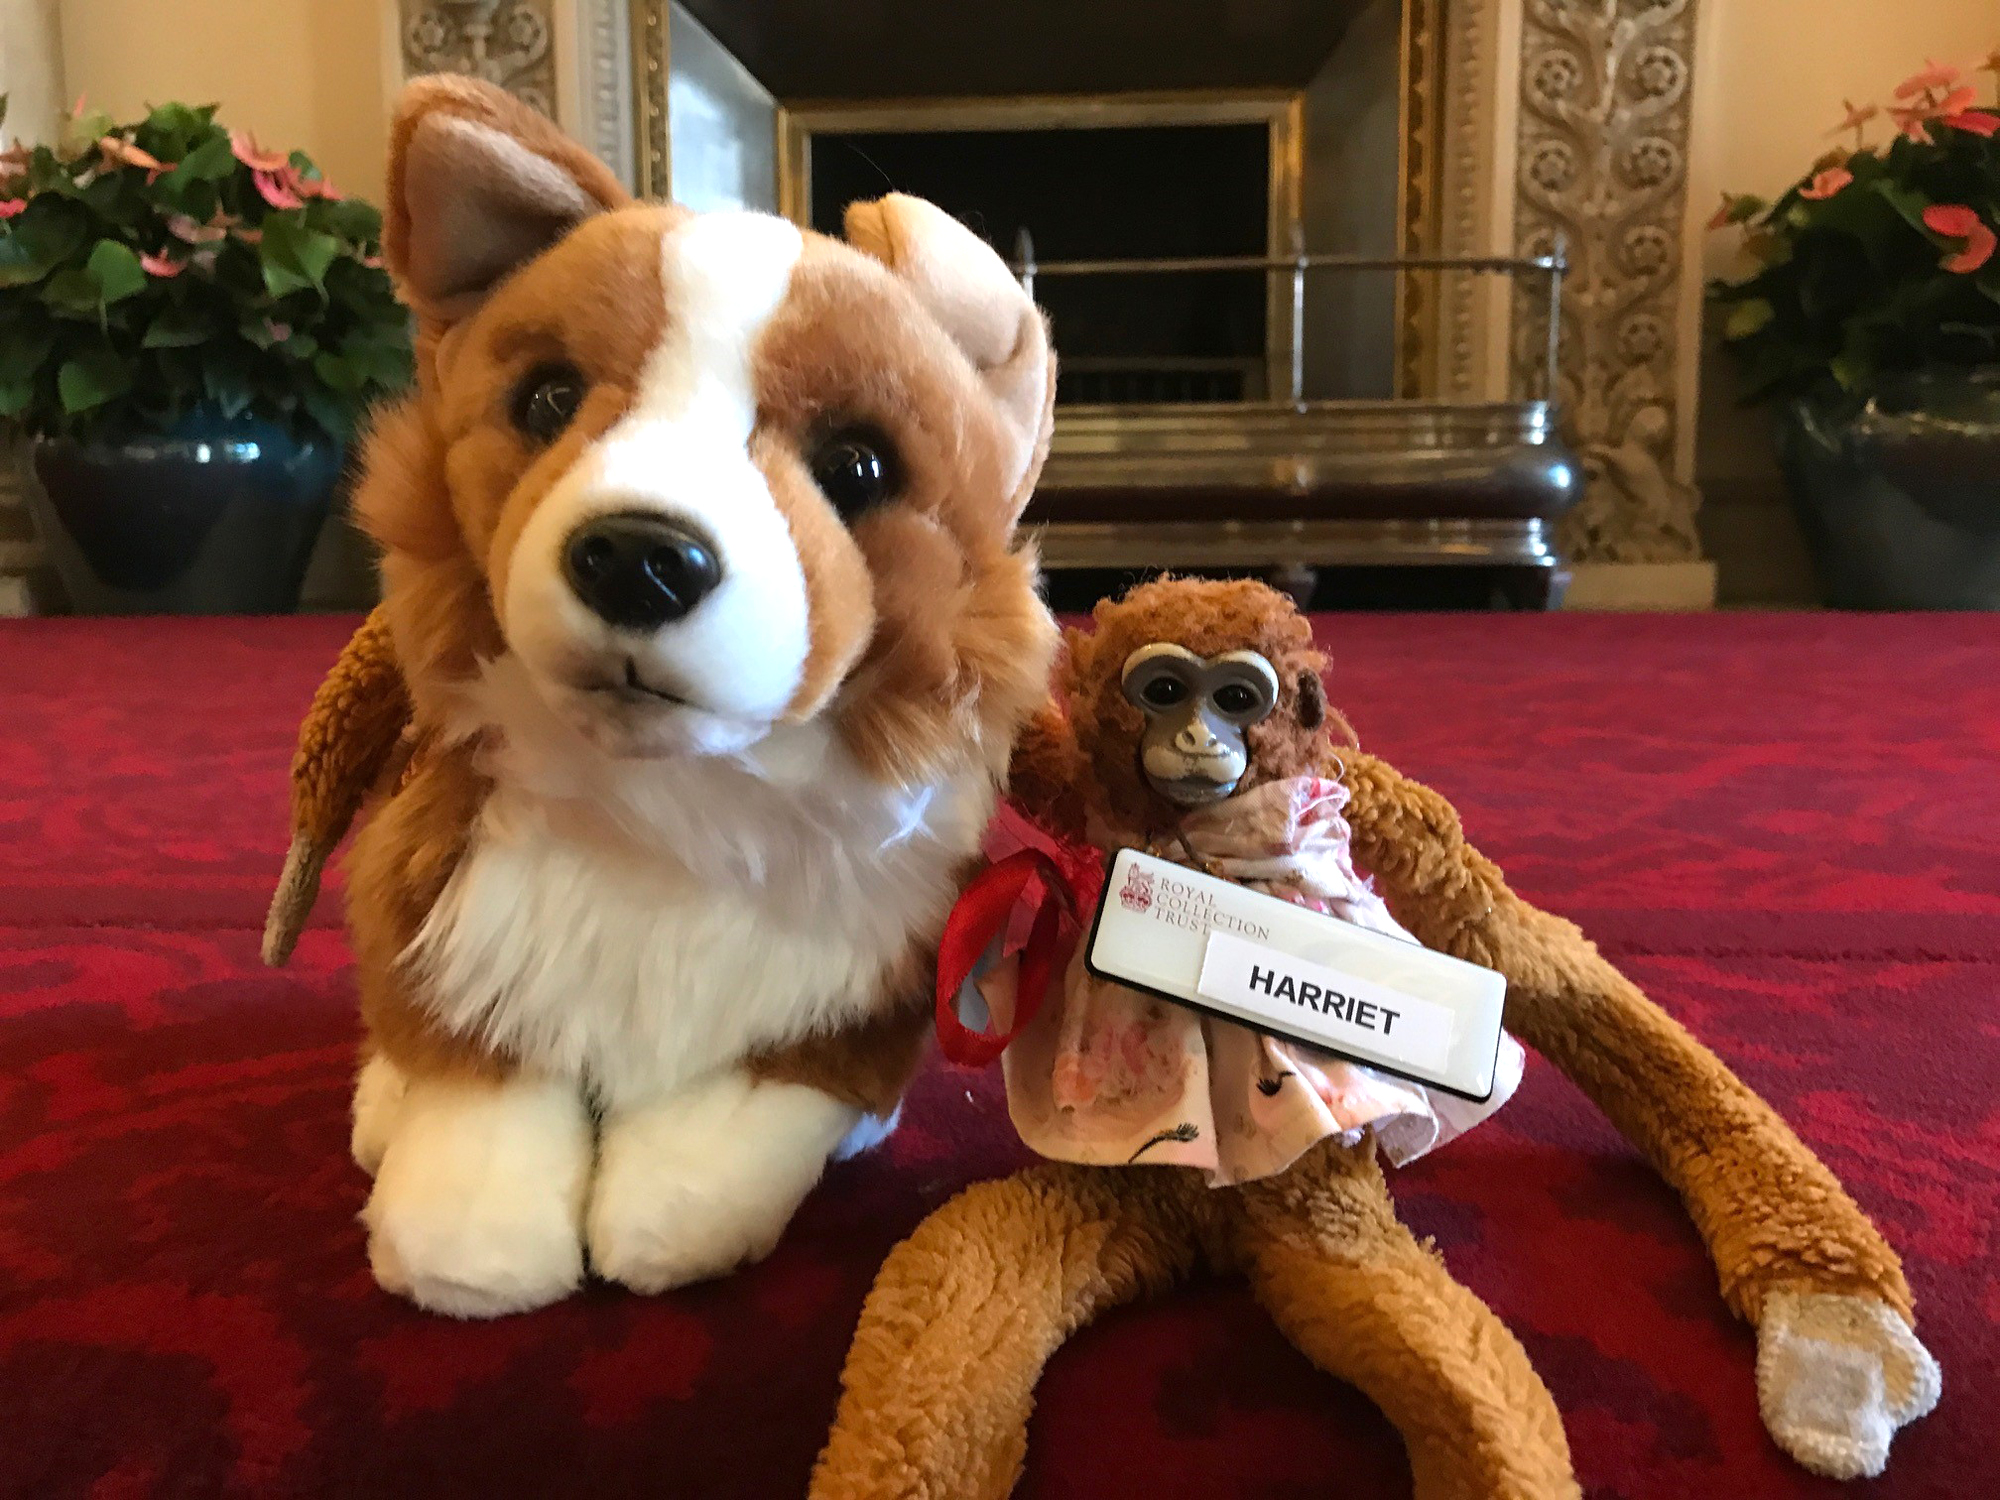 Harriet the Monkey Toy from Adelaide Hills kindergarden lost in Buckingham Palace 1